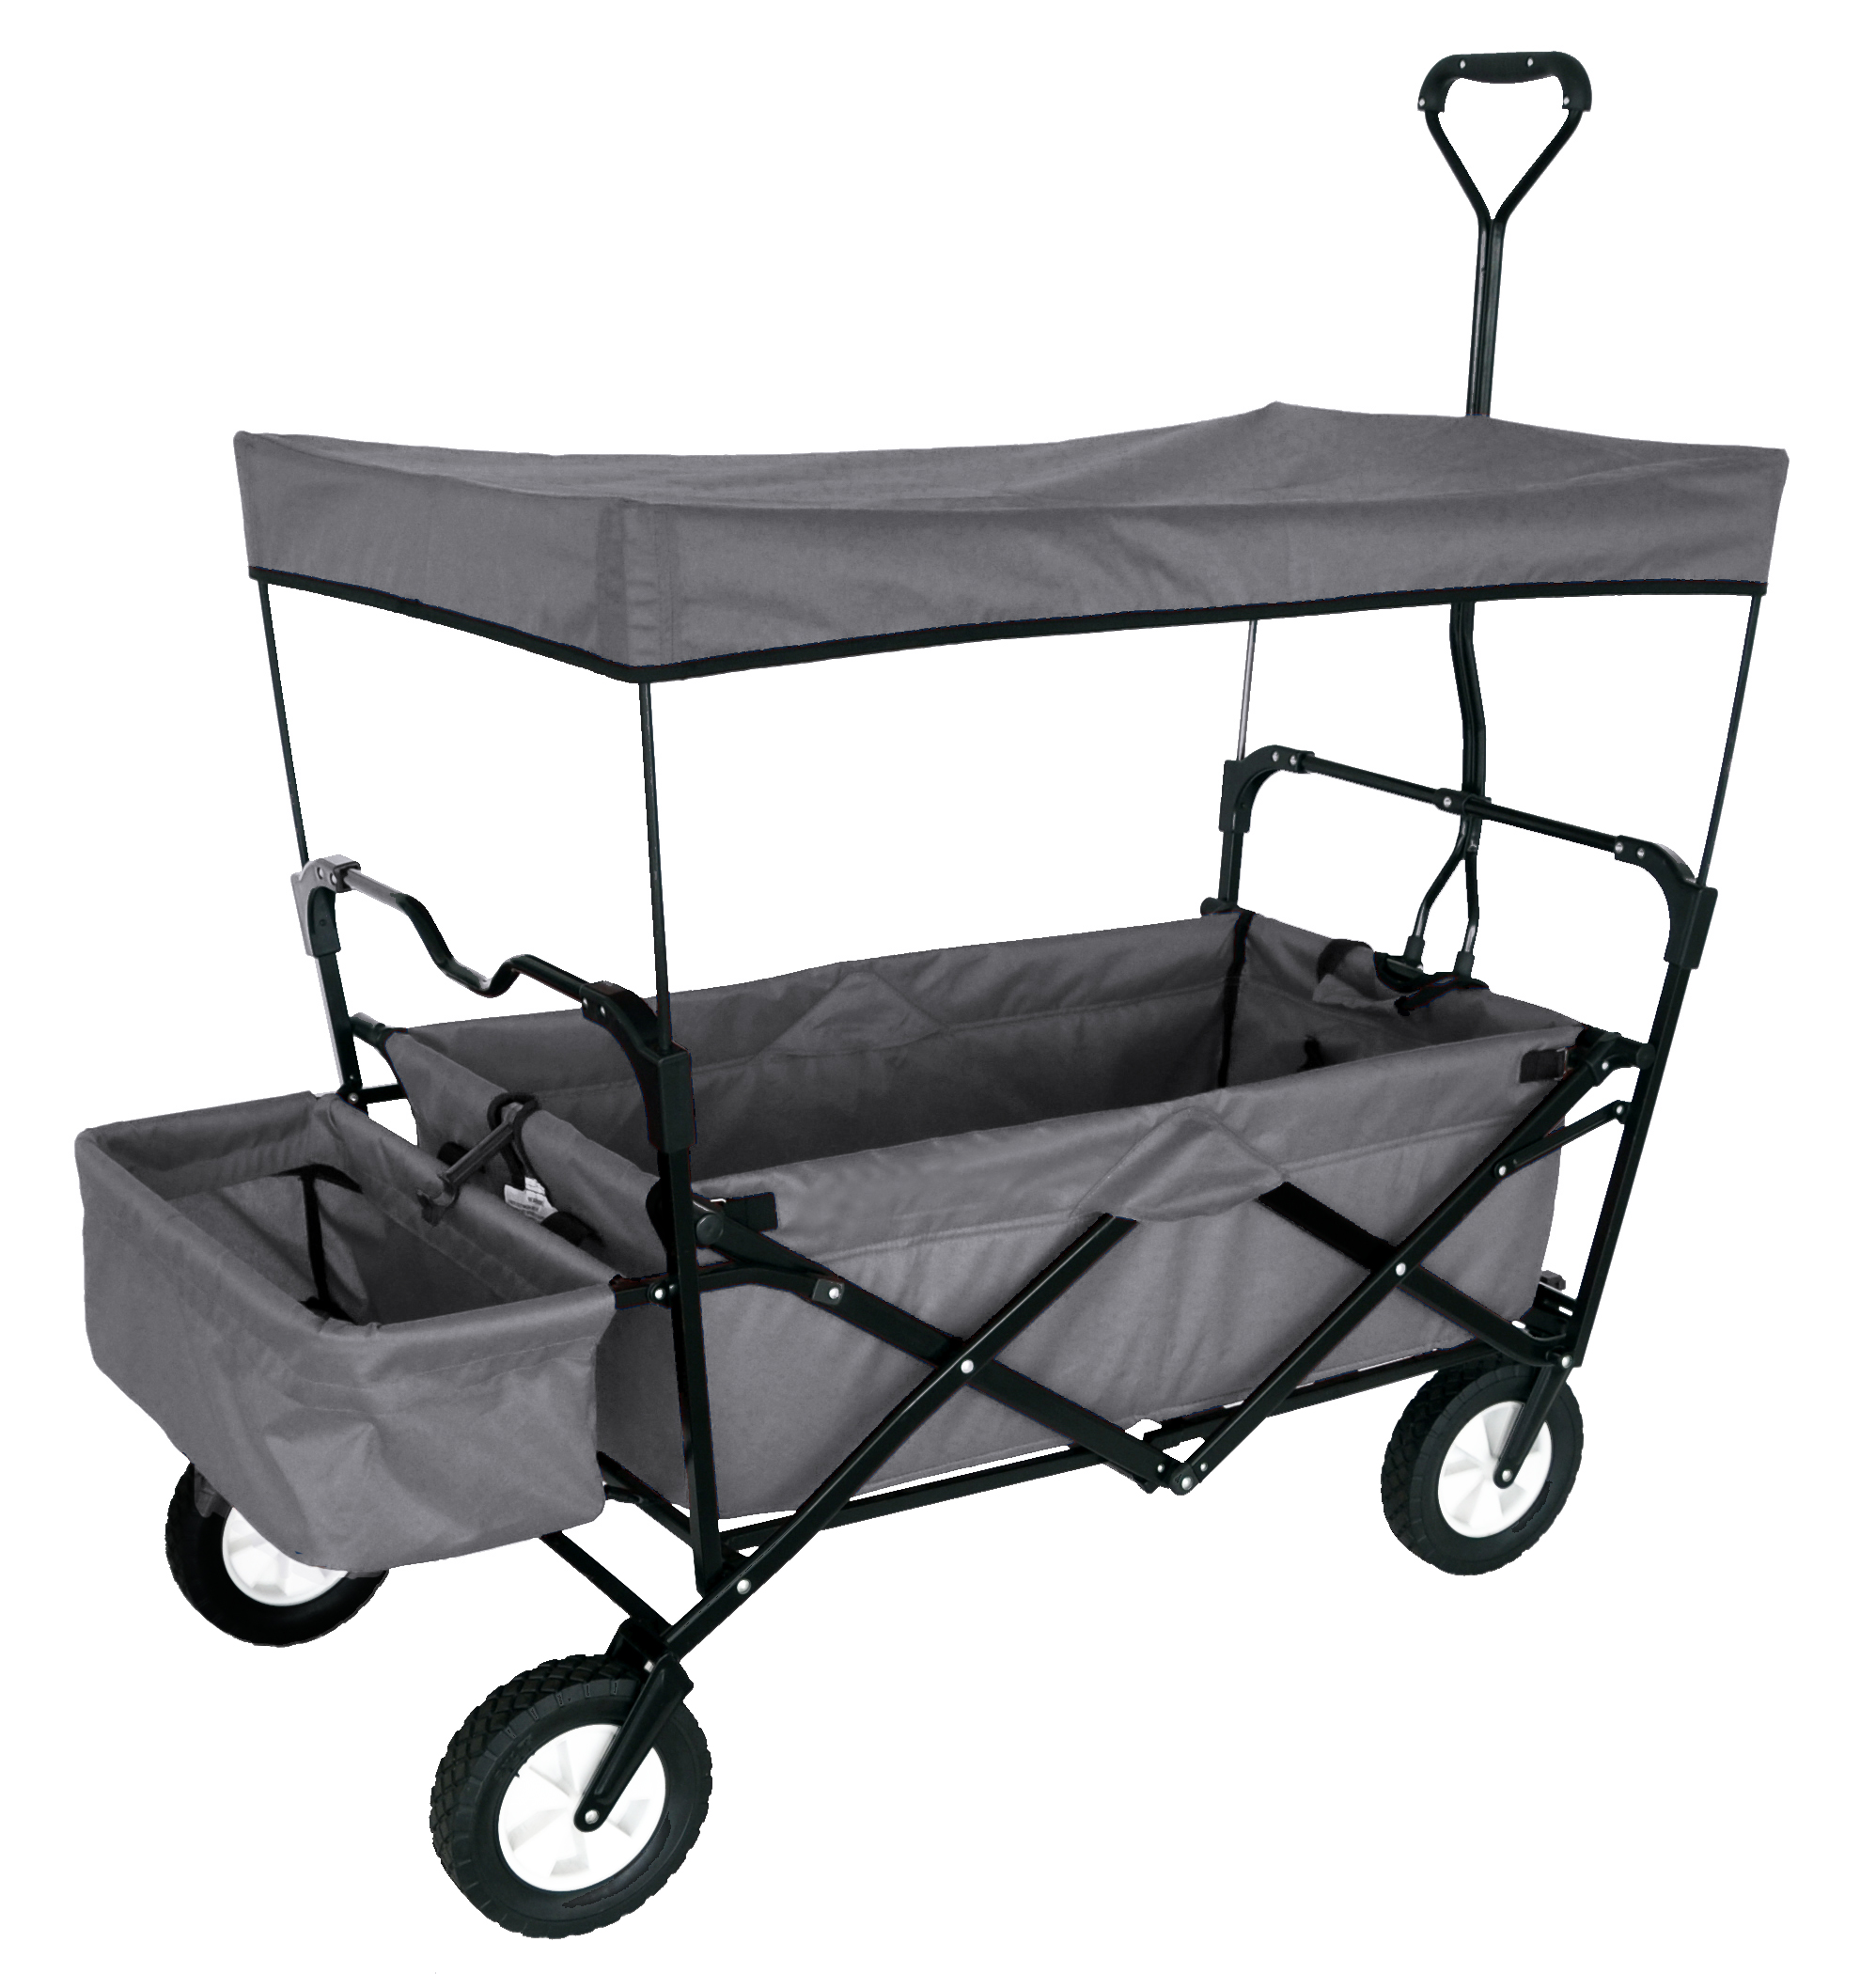 FOLDING WAGON WITH CANOPY GARDEN UTILITY TRAVEL CART GREY  sc 1 st  Easy Source Inc. & FOLDING WAGON WITH CANOPY GARDEN UTILITY TRAVEL CART